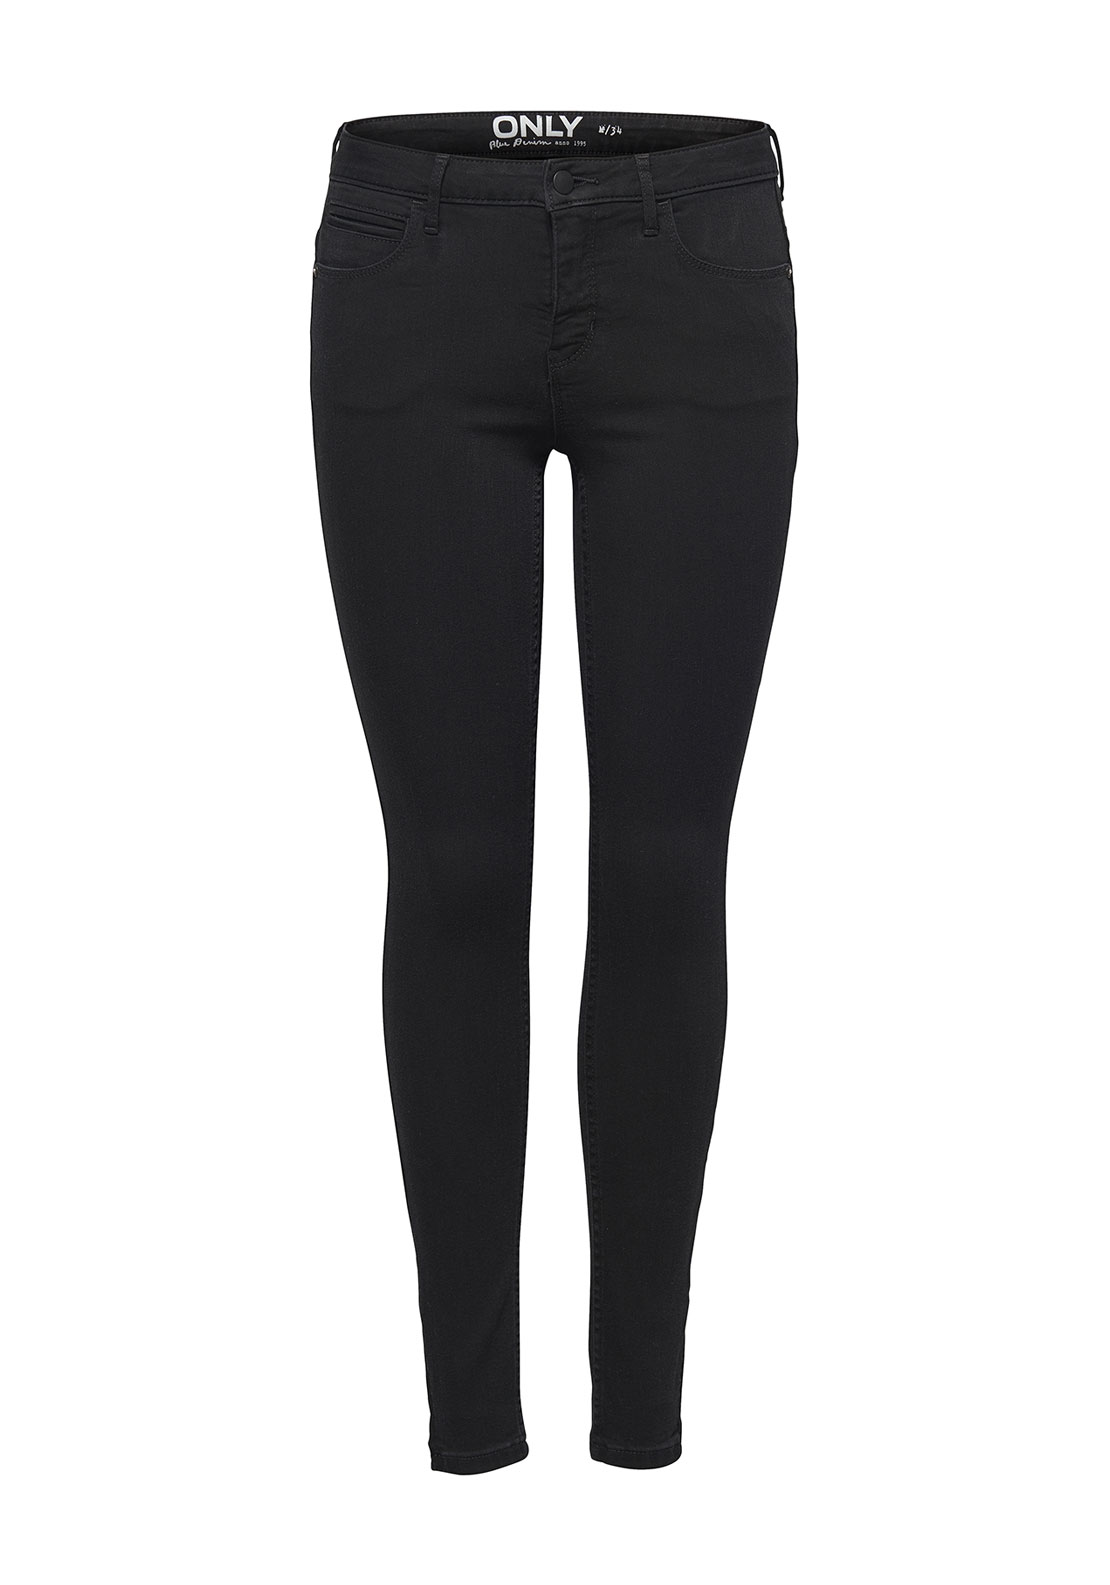 Only Kendall Eternal Skinny Jeans, Black